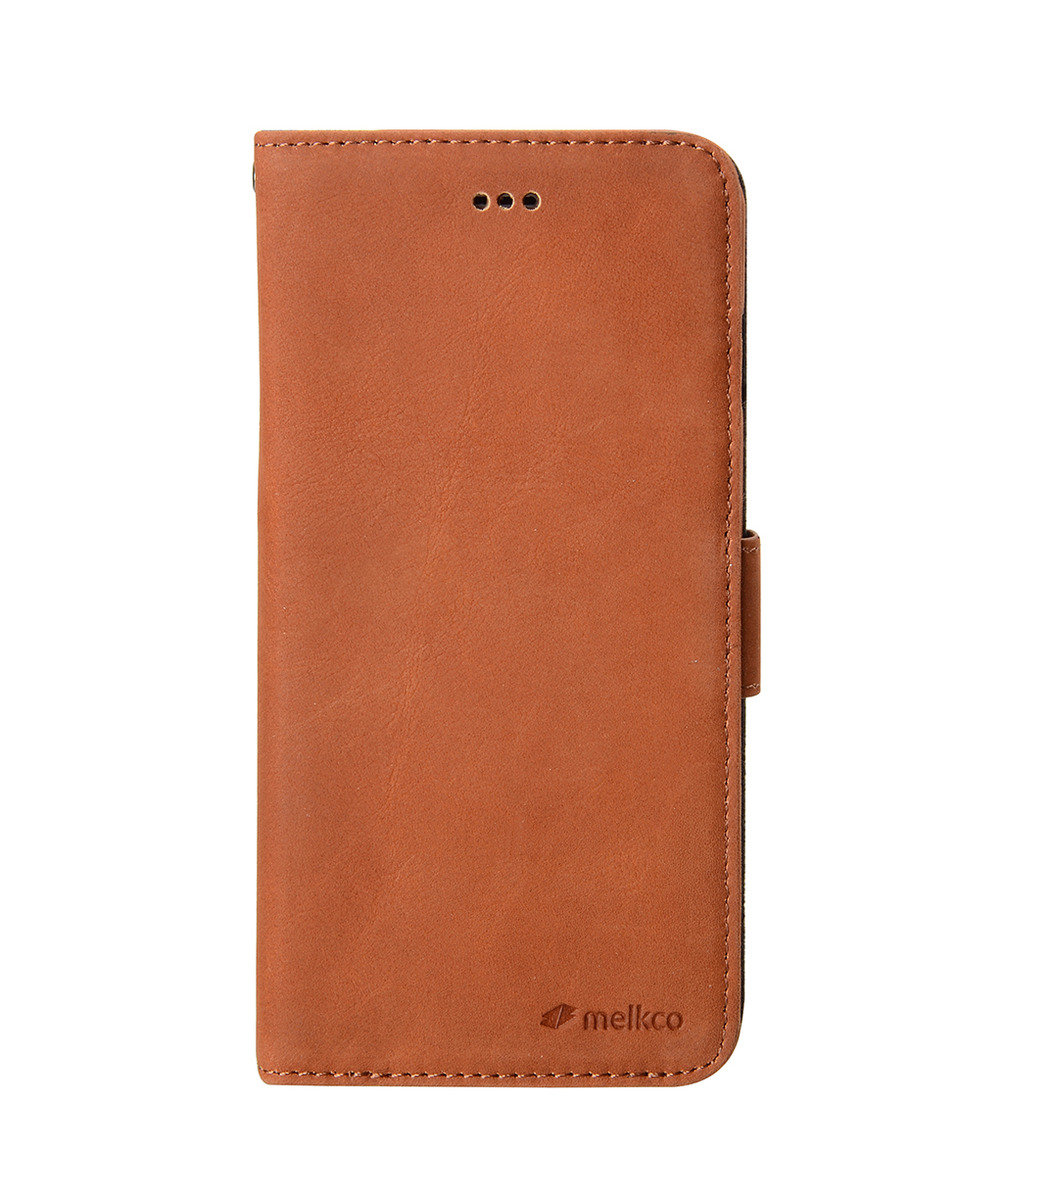 "Melkco- iPhone 6 Plus/6S Plus (5.5"") Wallet Book Type 高級真皮手機套 - 棕色"